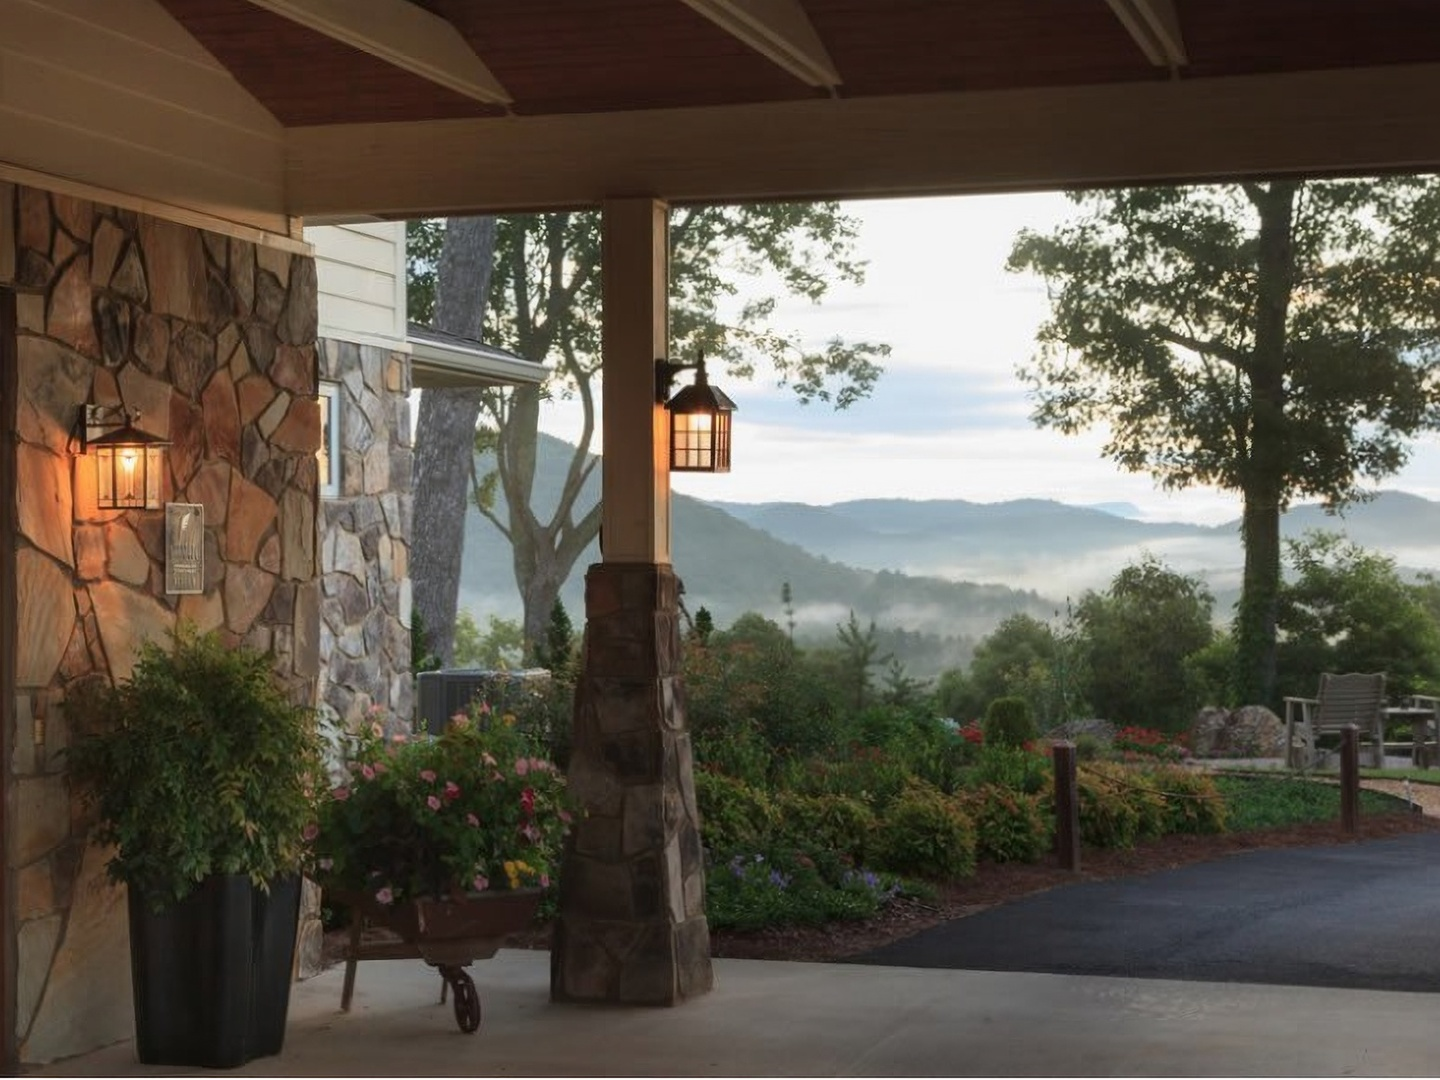 A view of a building at Lucille's Mountain Top Inn & Spa.